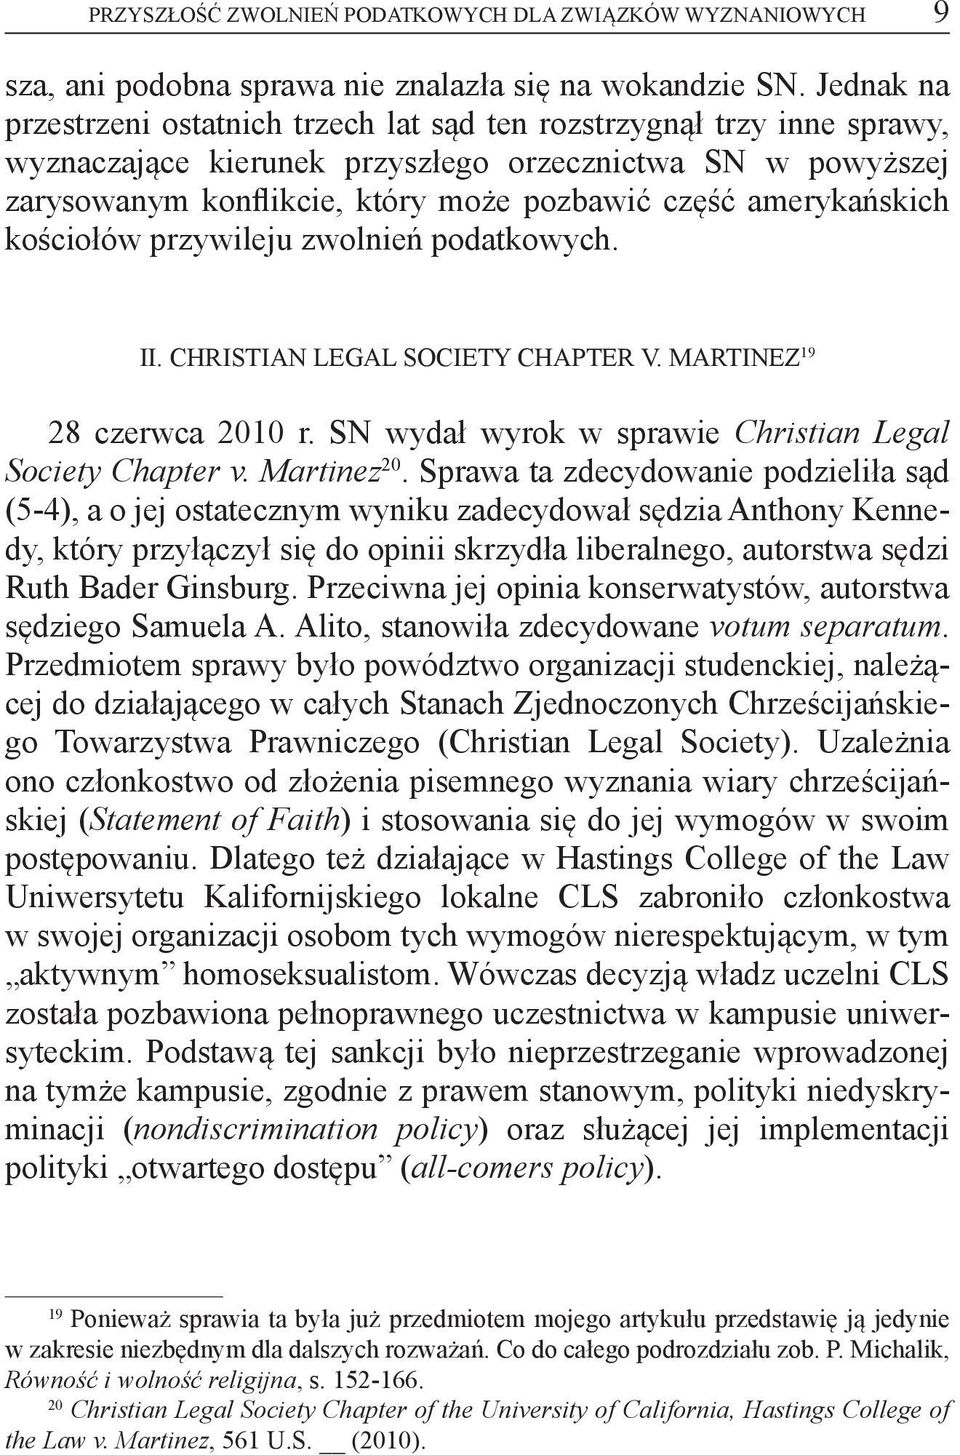 amerykańskich kościołów przywileju zwolnień podatkowych. II. Christian Legal Society Chapter v. Martinez 19 28 czerwca 2010 r. SN wydał wyrok w sprawie Christian Legal Society Chapter v. Martinez 20.